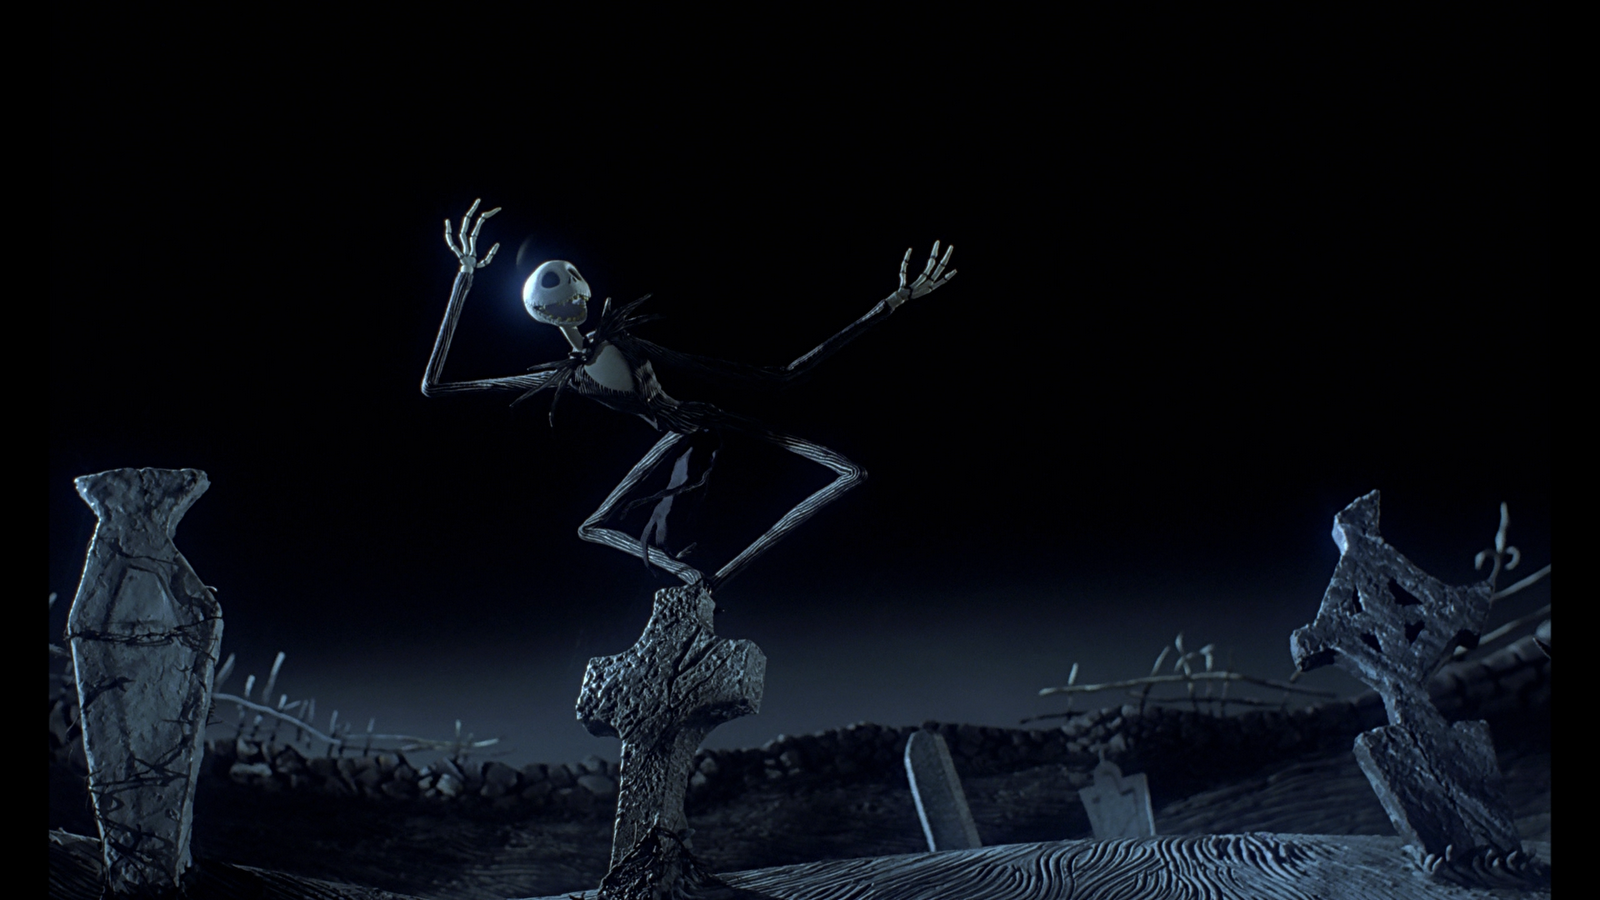 Lovella Licznar the nightmare before christmas wallpaper hd 1600x900